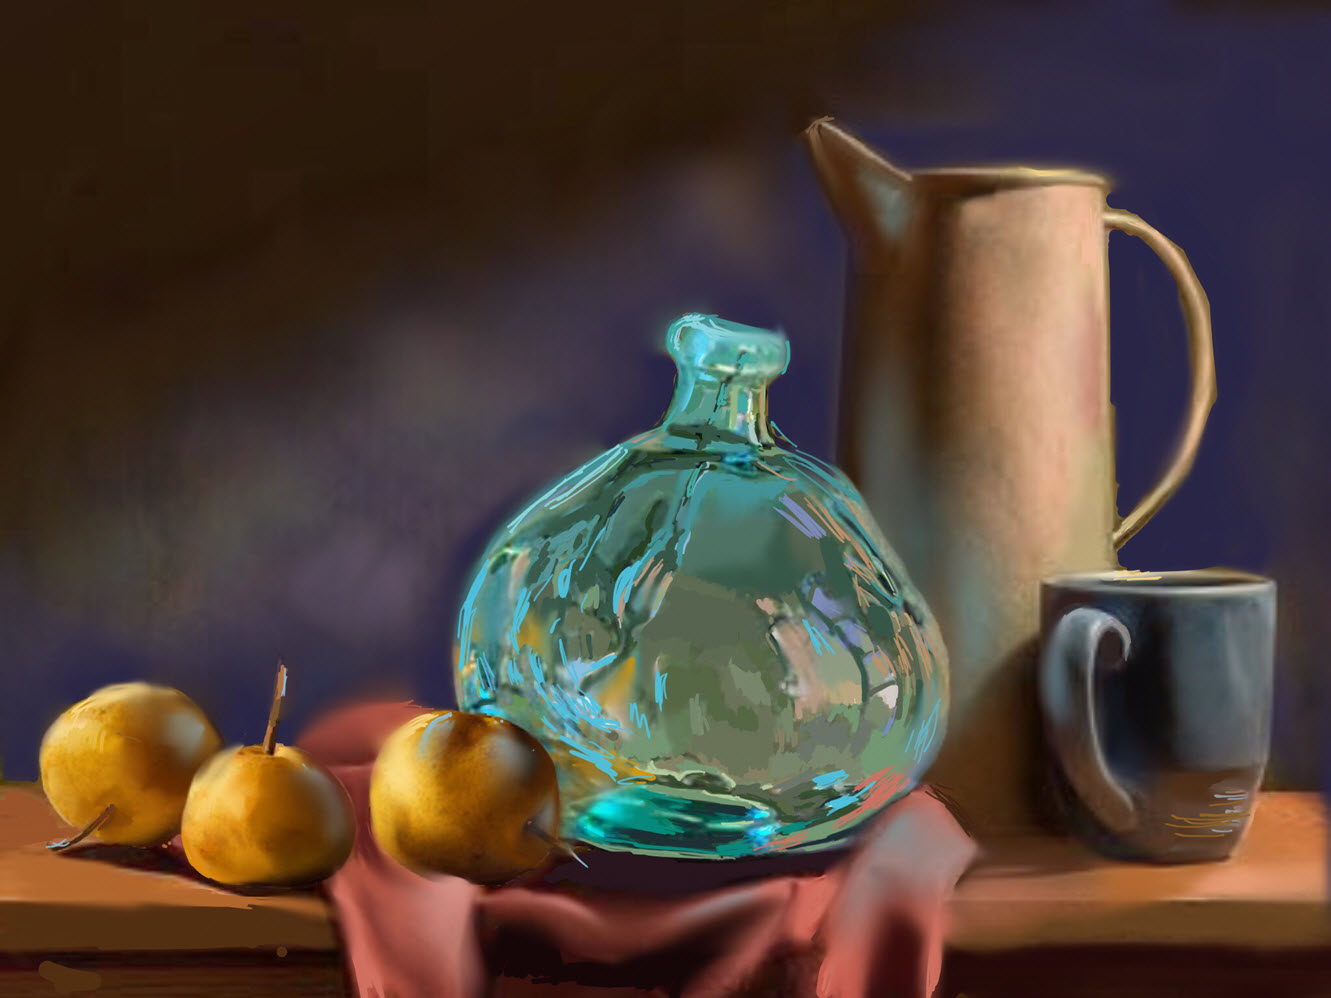 Still Life with Blue Art Glass